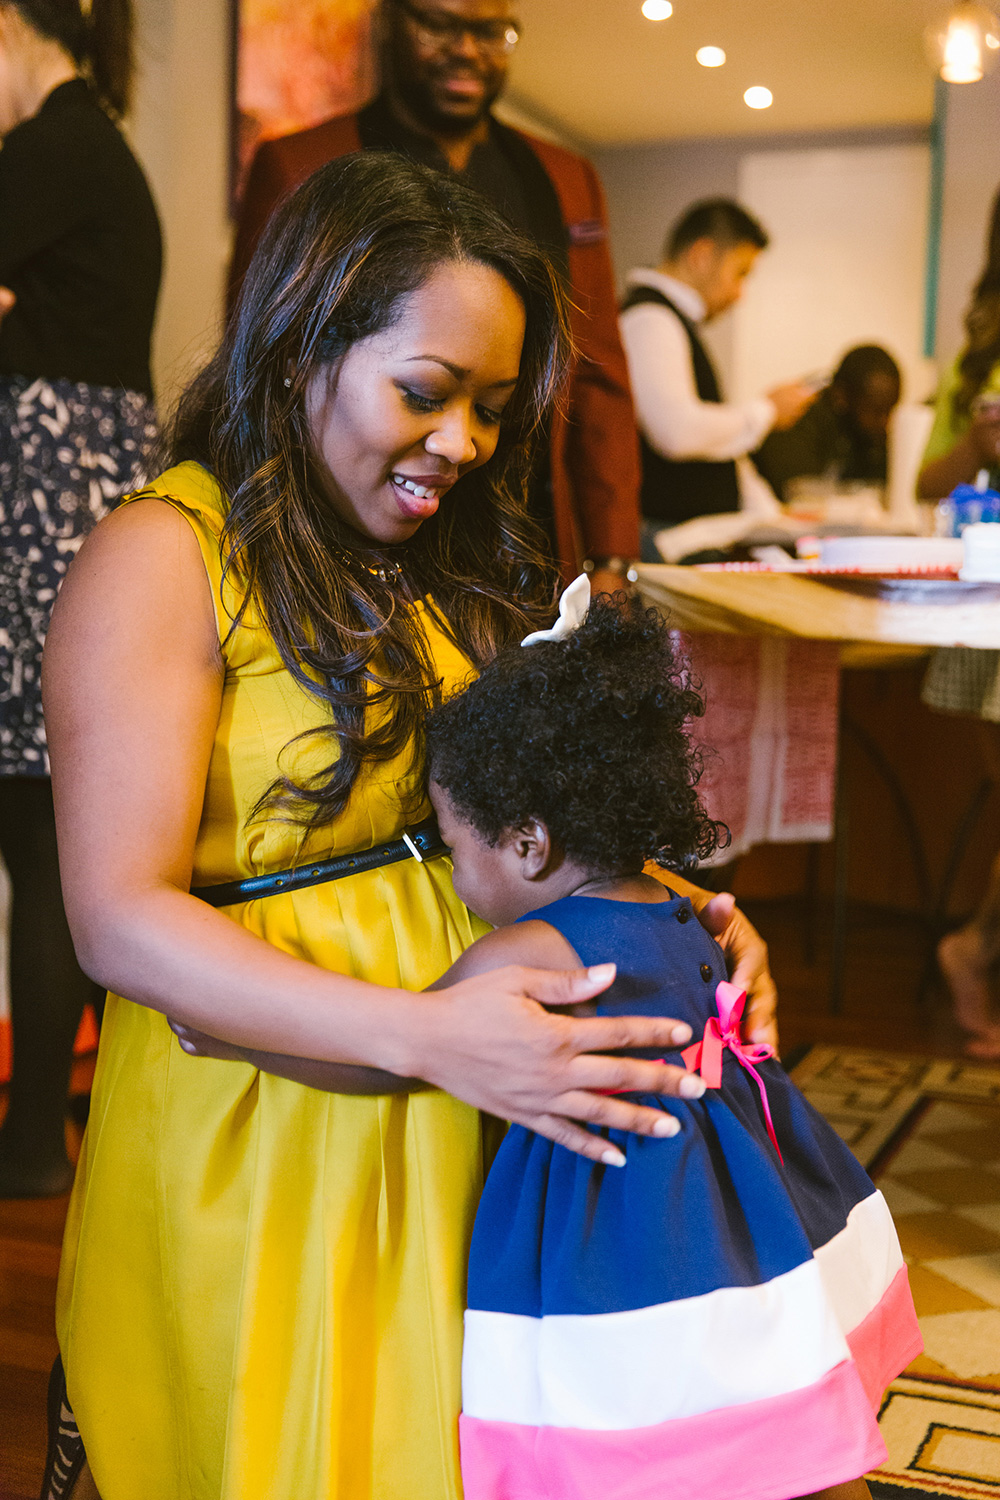 WEB_2015_April_BabyShower_EuniceDockery_0609.jpg